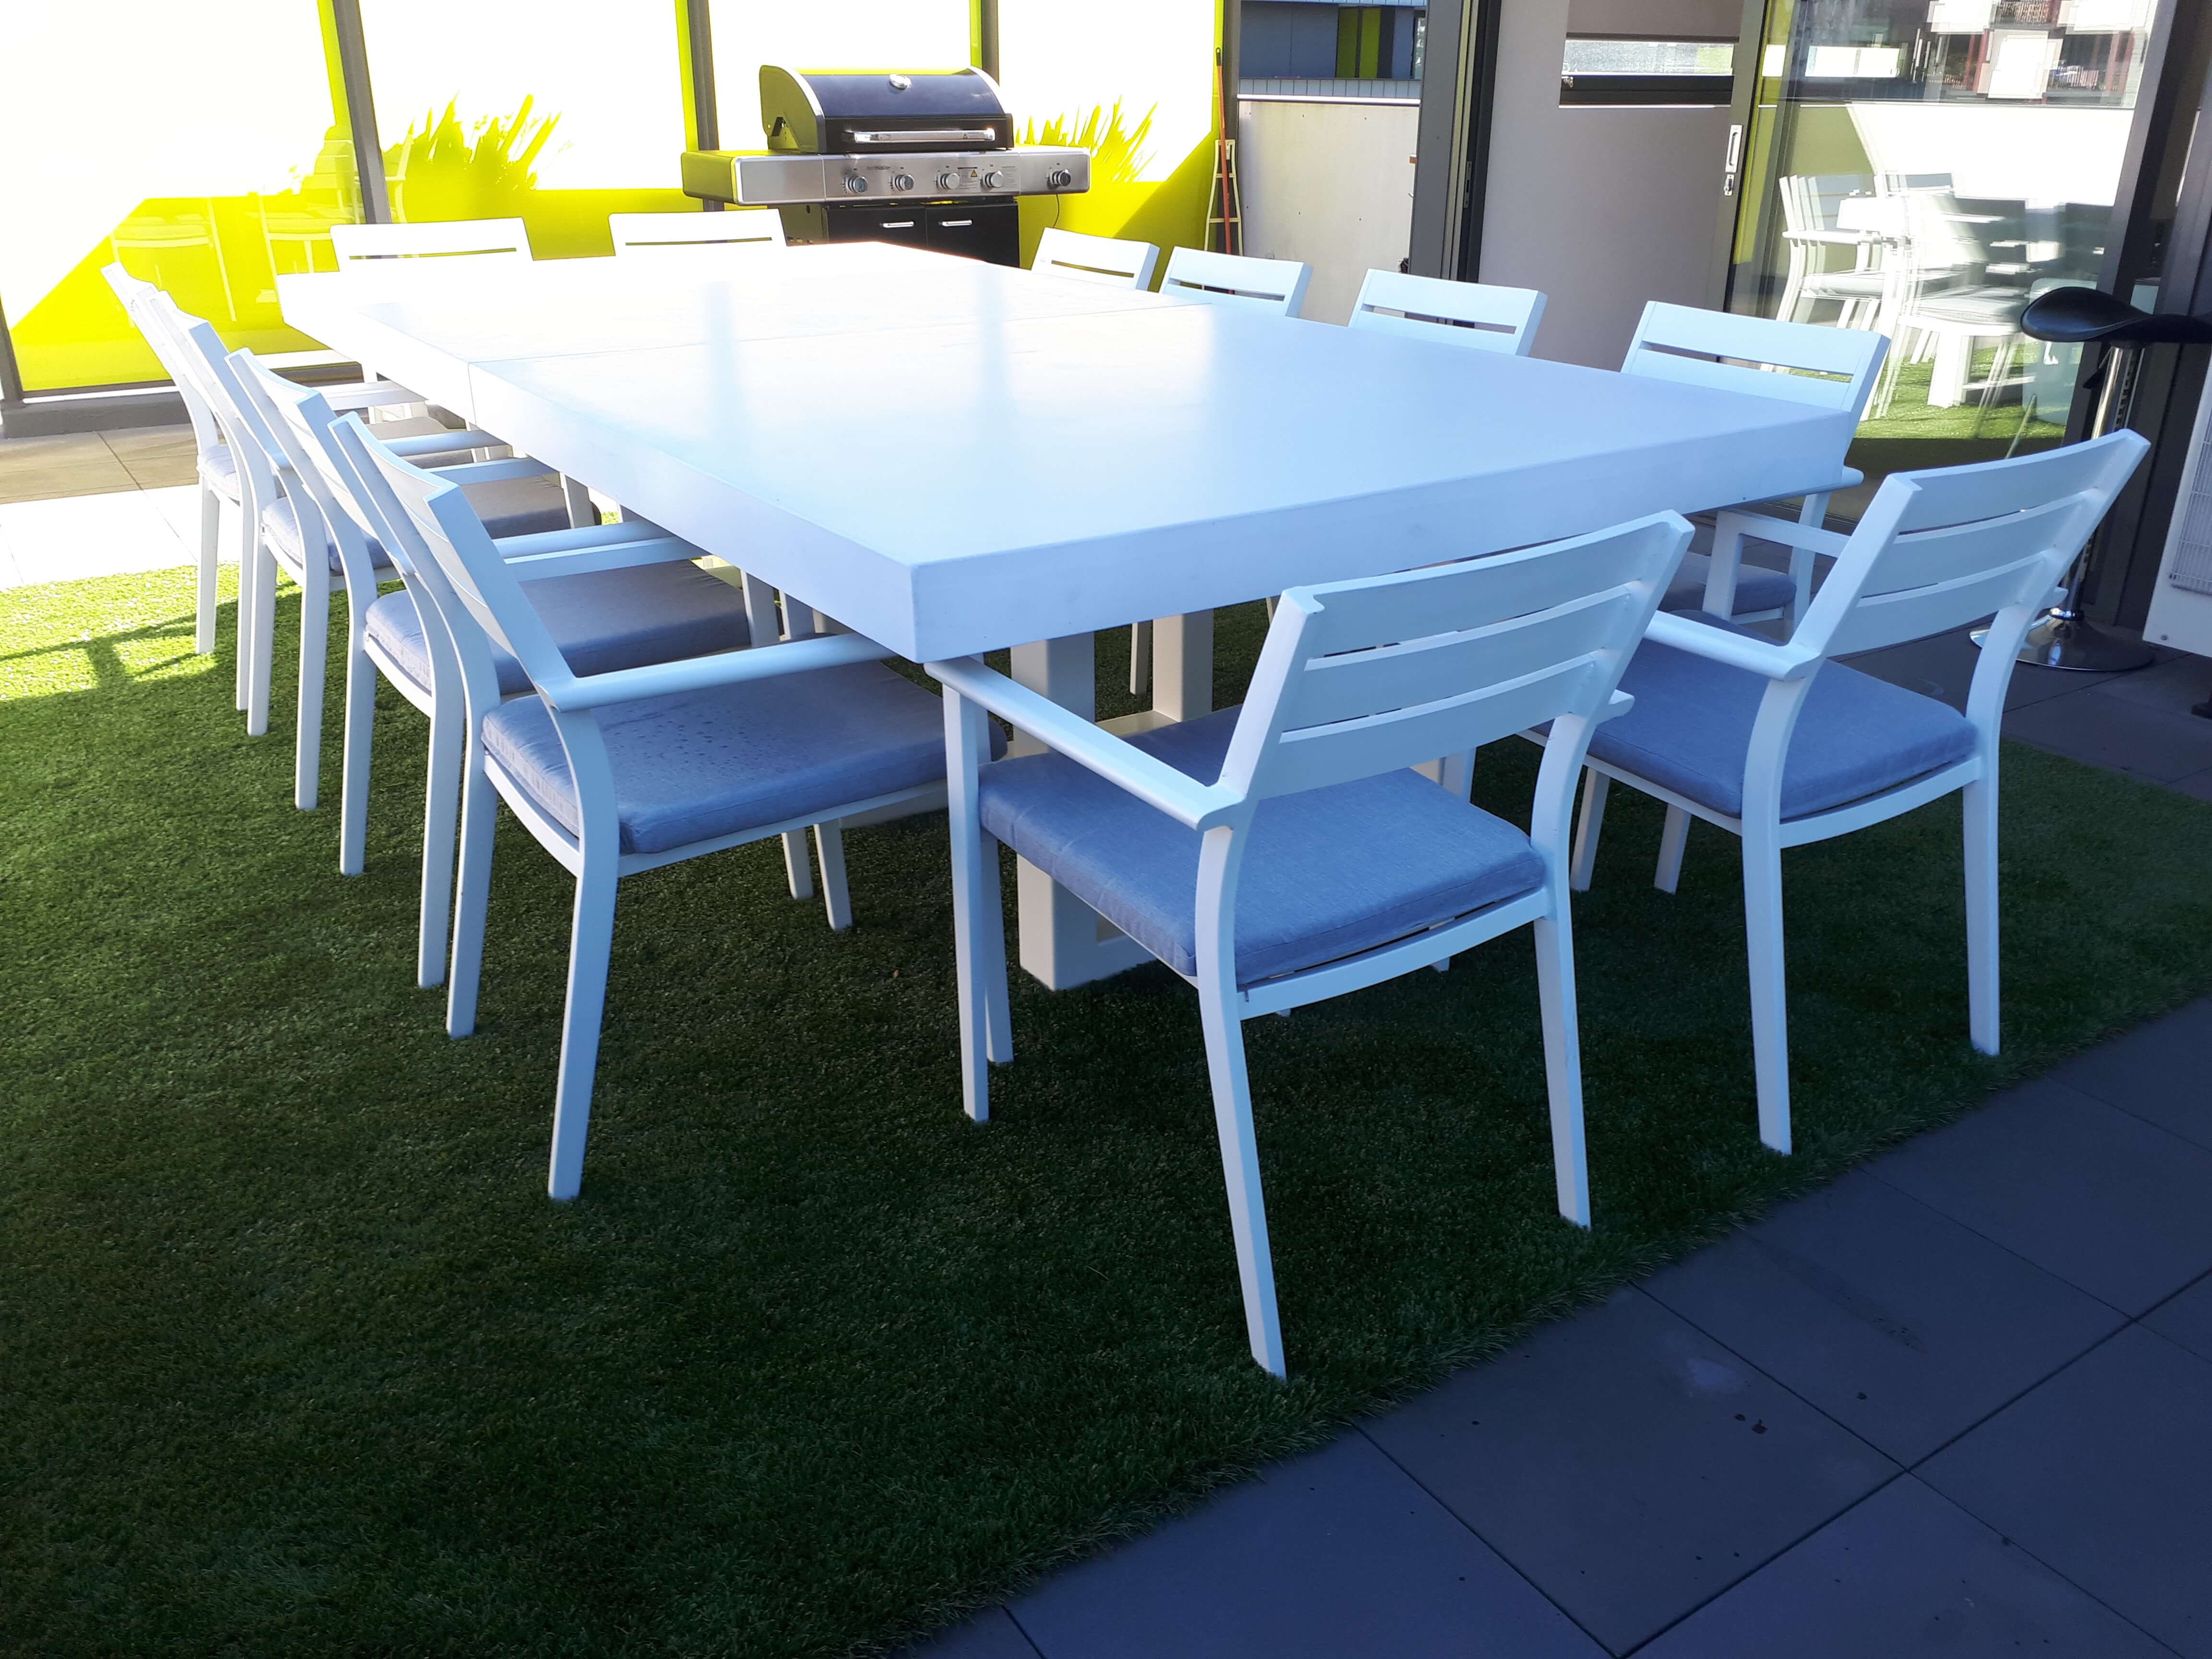 3000 x 1200 ironstone white concrete table with steel hoop legs